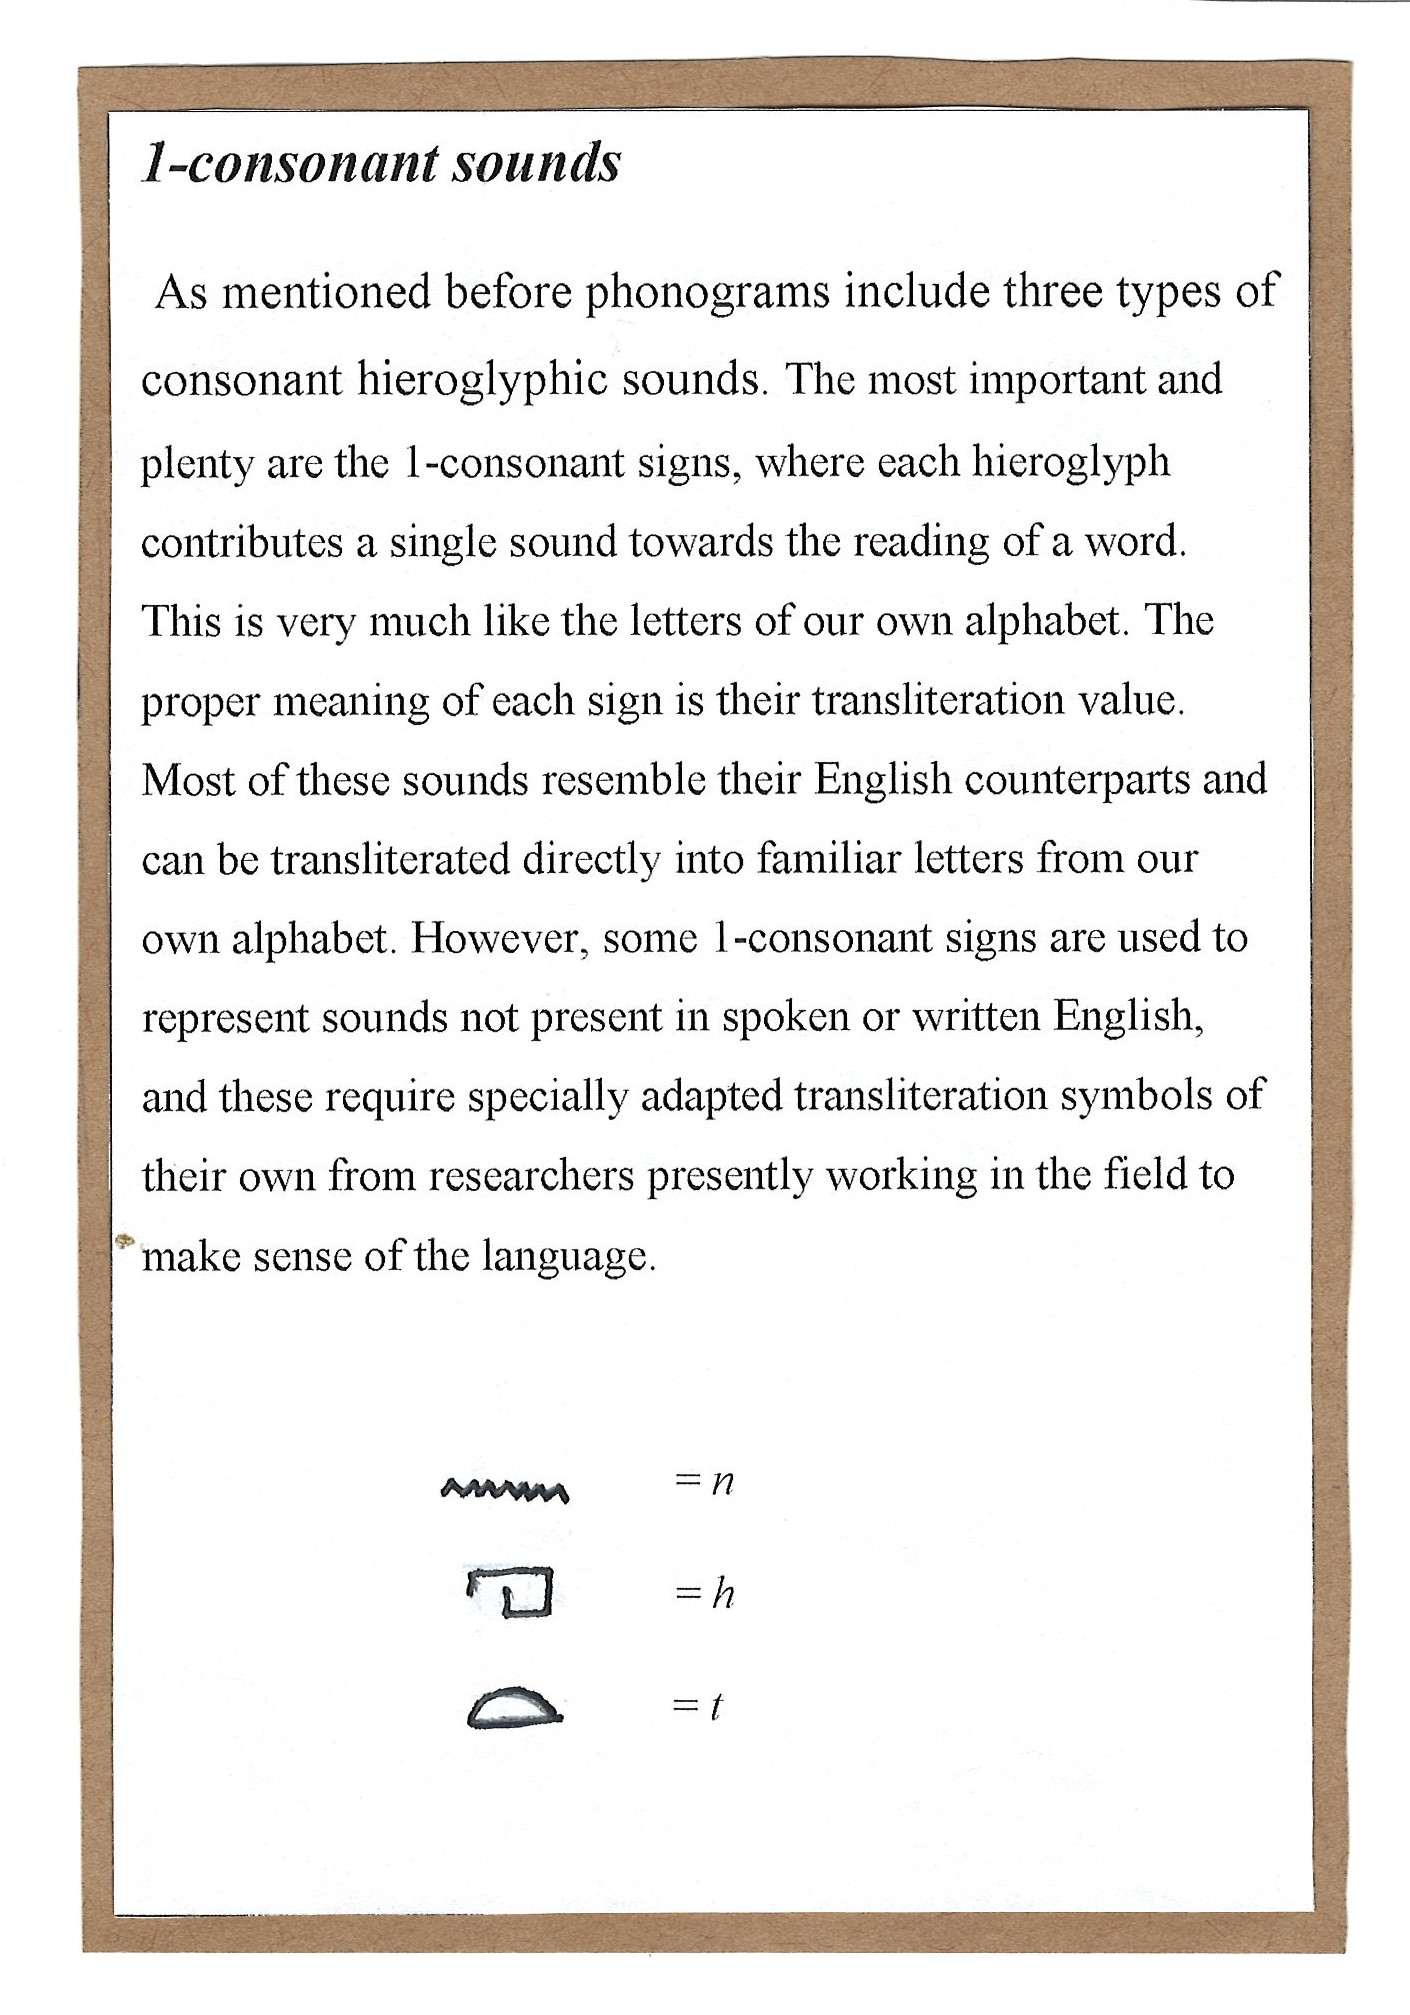 Page 5. A continuation of the exploration of phonograms with the large pool of examples of 1-consonant sounds.